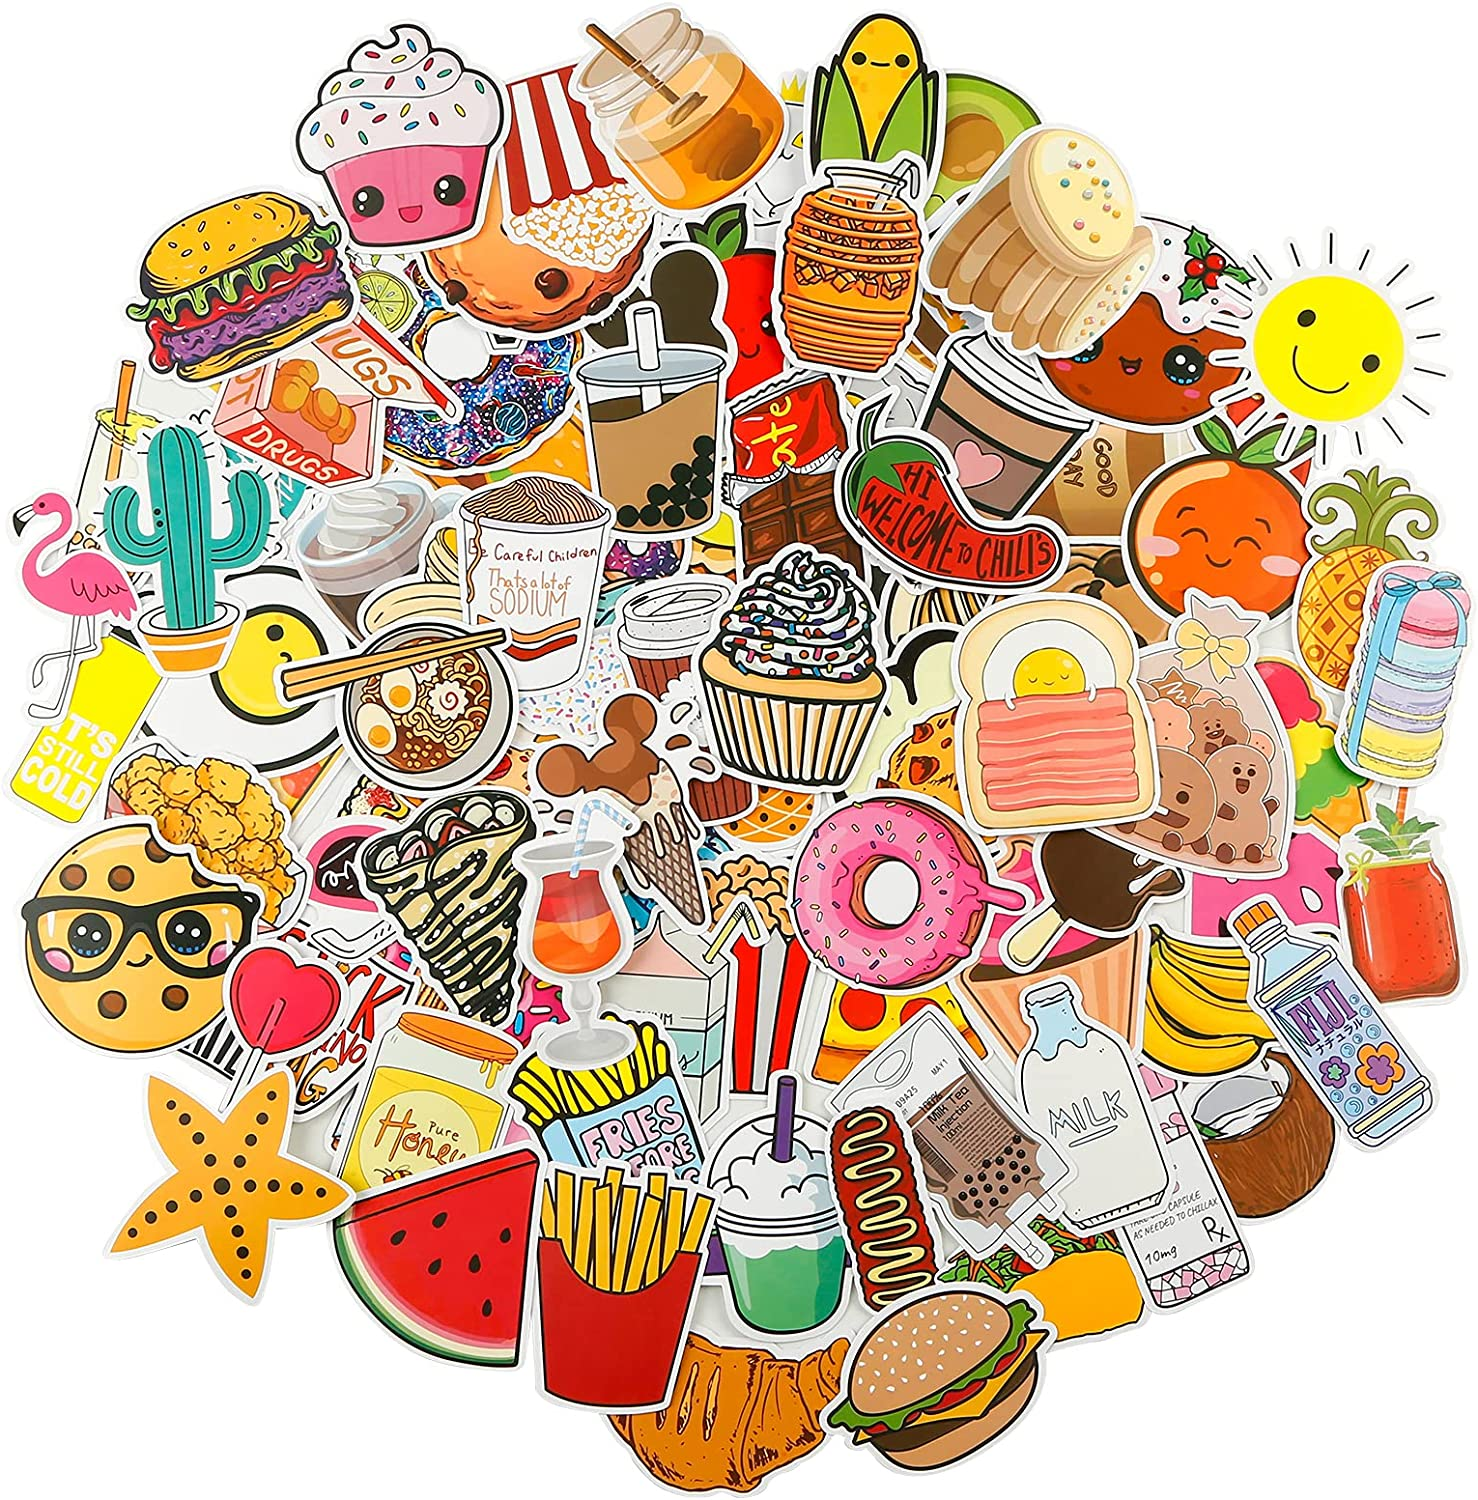 100 PCS Stickers VSCO Cute Food Stickers Ice Cream for Water Bottles Cup Laptop Refrigerator Guitar PVC Mobile Phone Sets Kettle Refrigerator Scooter Stickers Motorcycle Bike Skateboard Vinyl Waterproof Graffiti